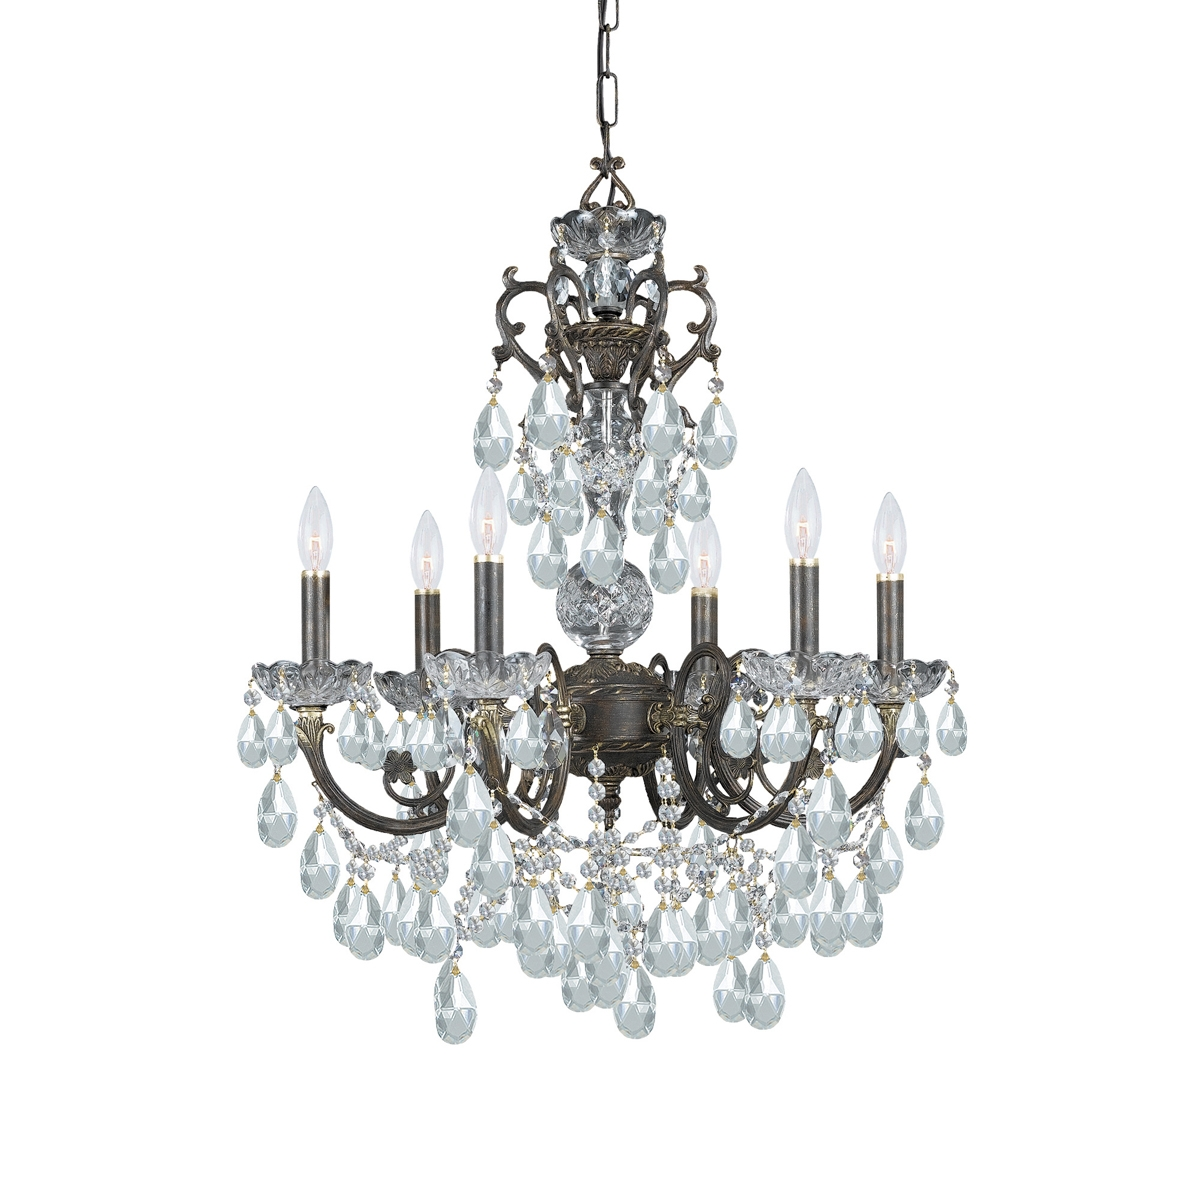 5196 Eb Cl Mwp Legacy 6 Light Clear Crystal Bronze Chandelier Intended For Ornate Chandeliers (Image 1 of 15)